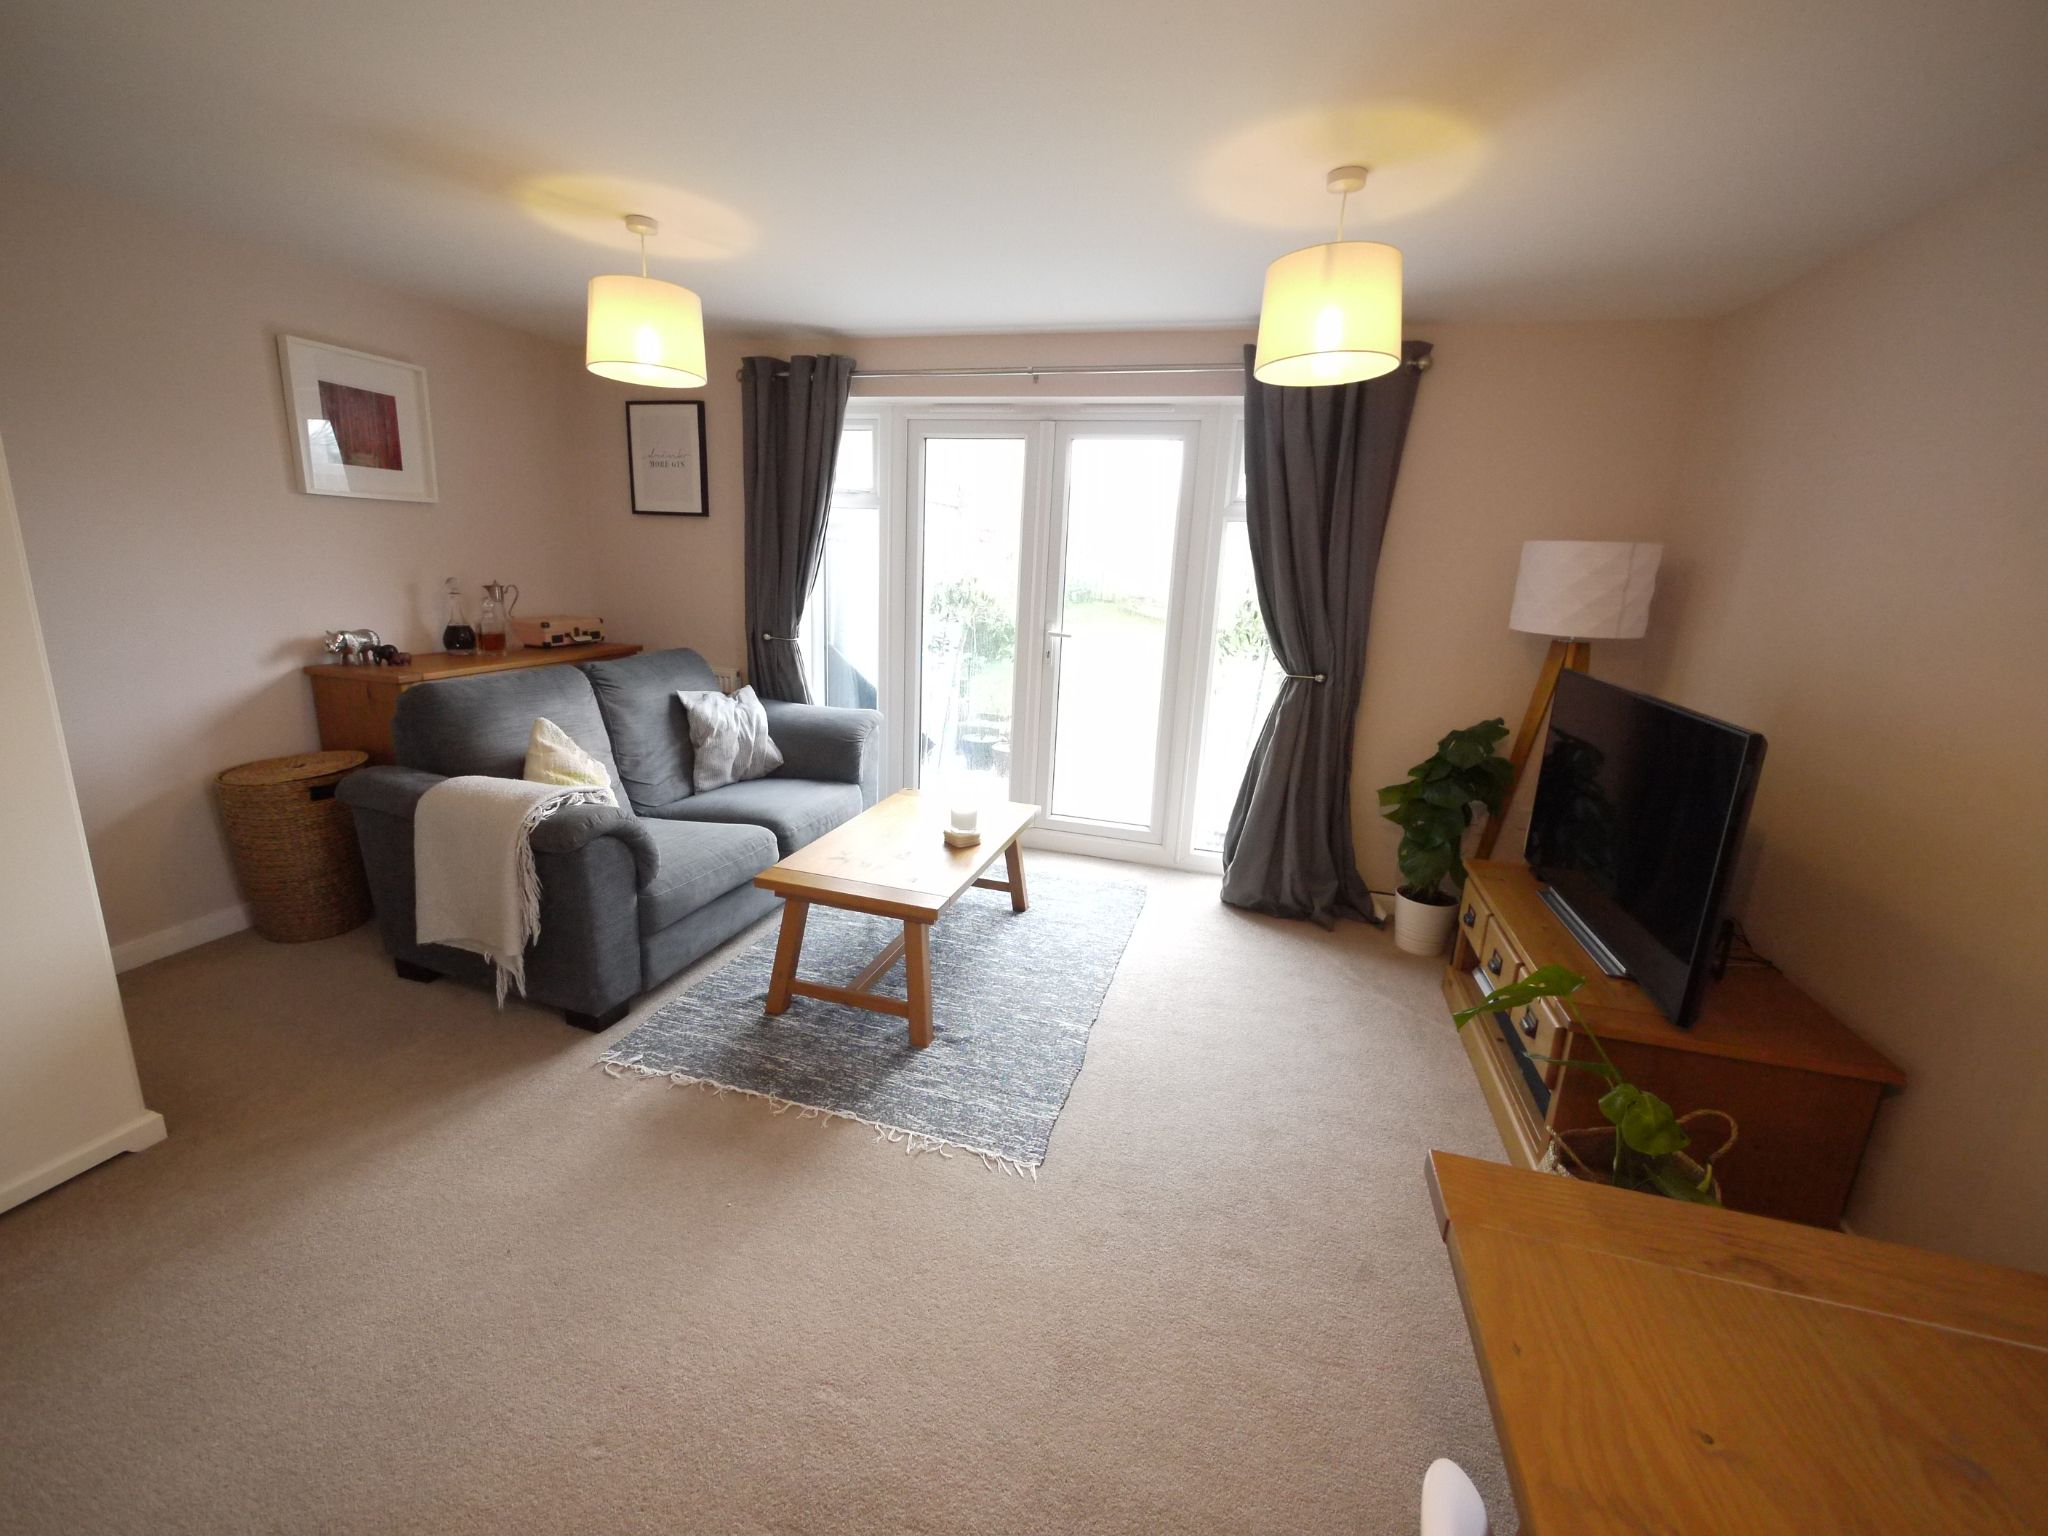 3 bedroom end terraced house SSTC in Cleckheaton - Lounge 2.